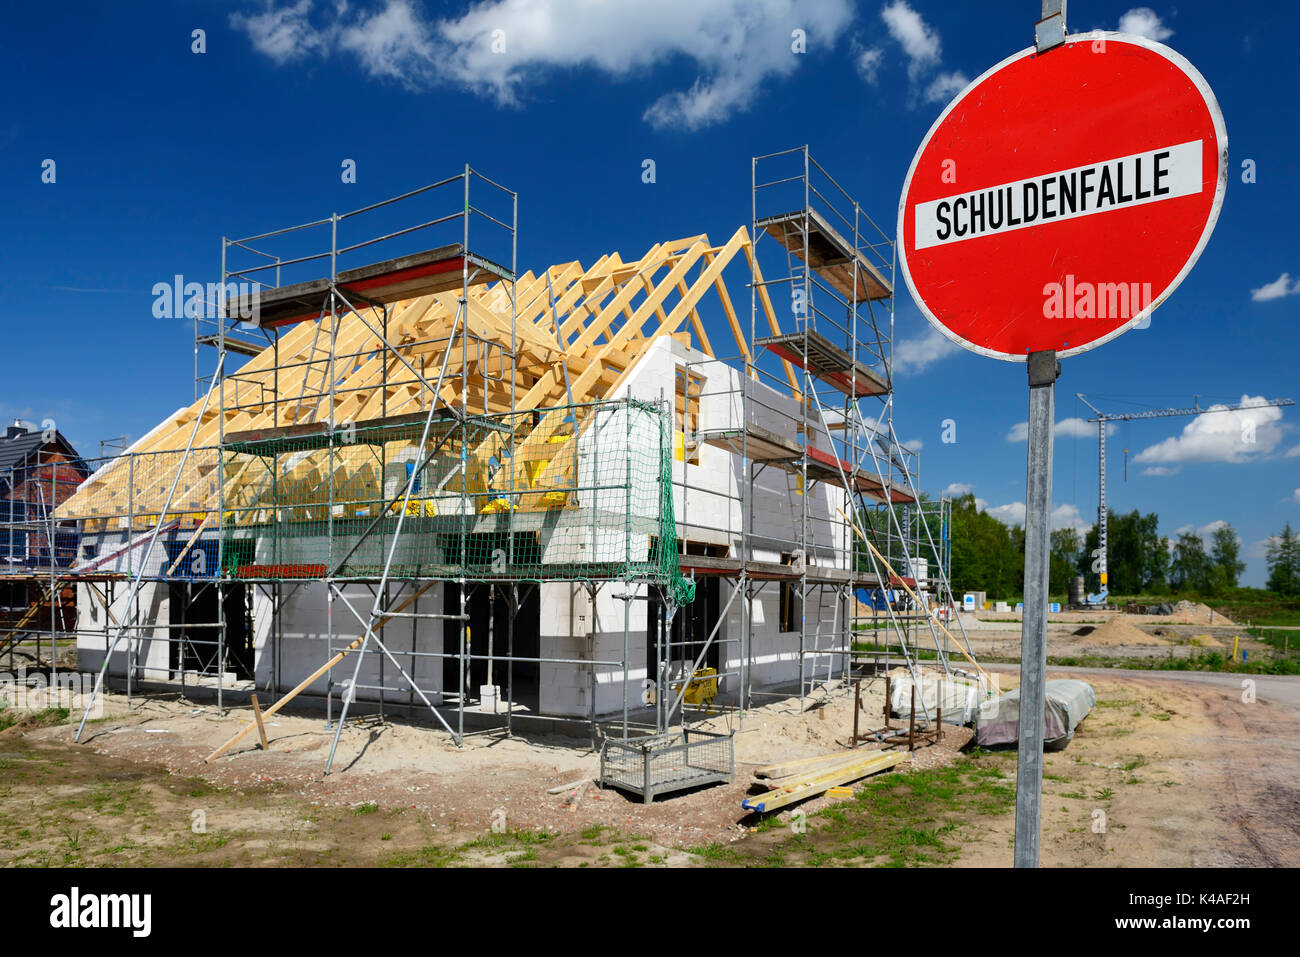 Private Housebuilding And Debt Trap Warning Sign - Stock Image